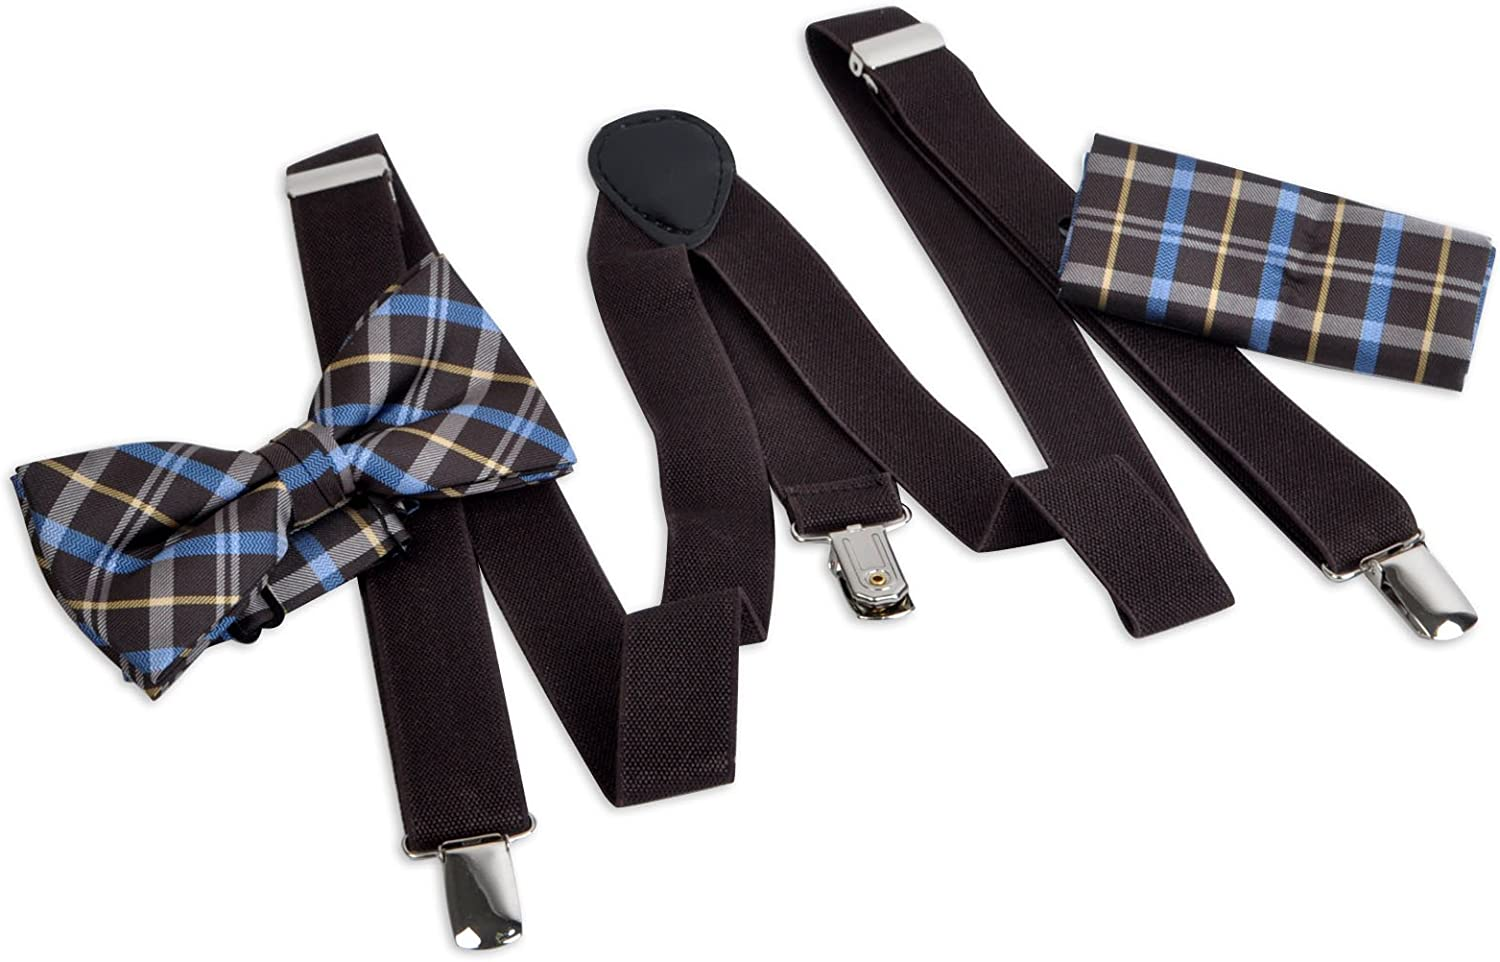 Men's Brown Plaid Checks Formal 3 PC Clip-on Suspenders, Bow Tie and Hanky Set